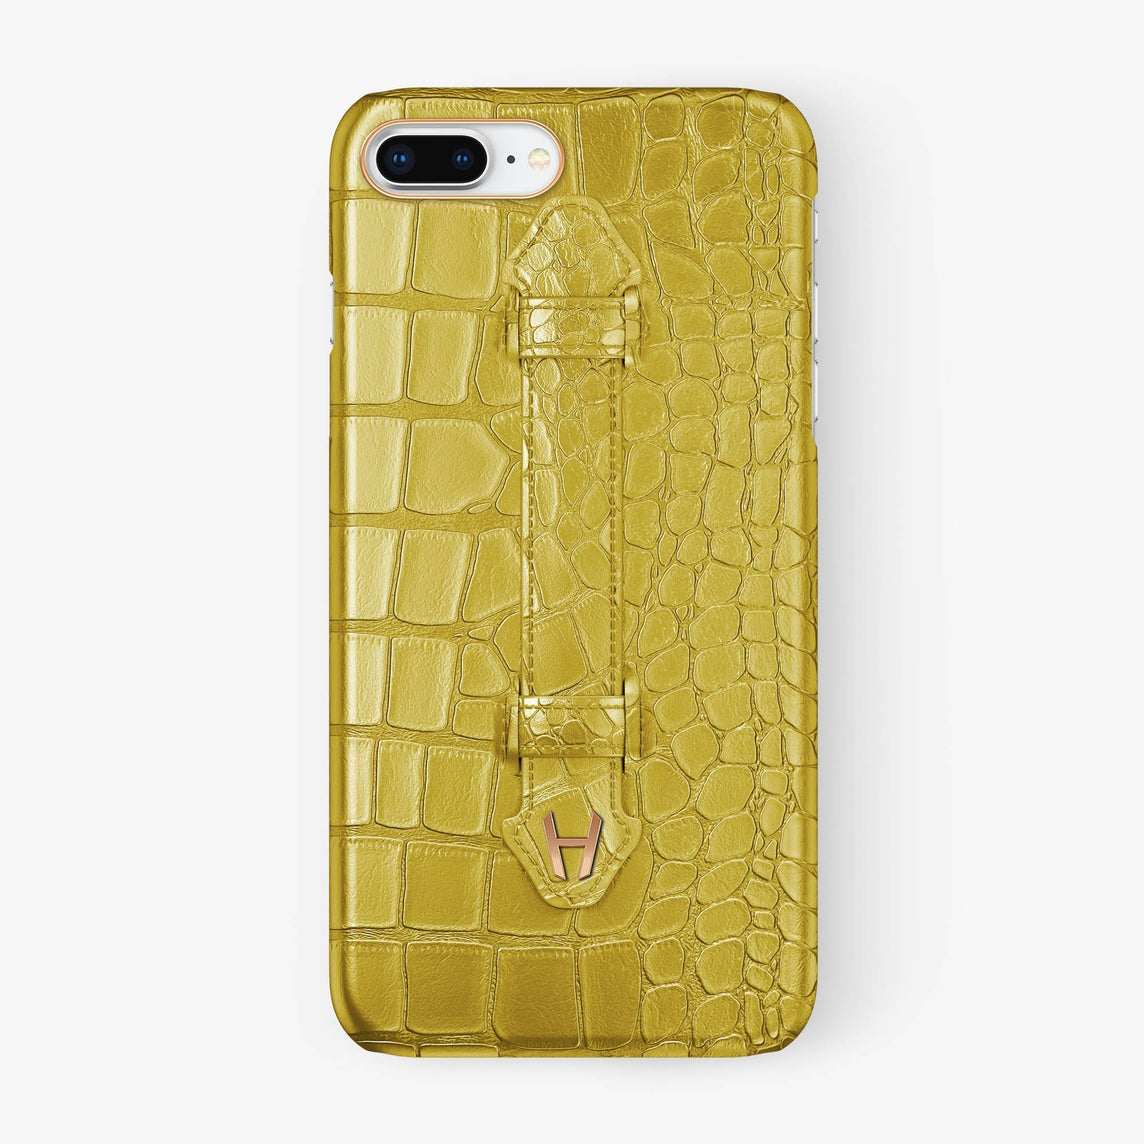 Yellow Alligator iPhone Finger Case for iPhone 7/8 Plus finishing rose gold - Hadoro Luxury Cases